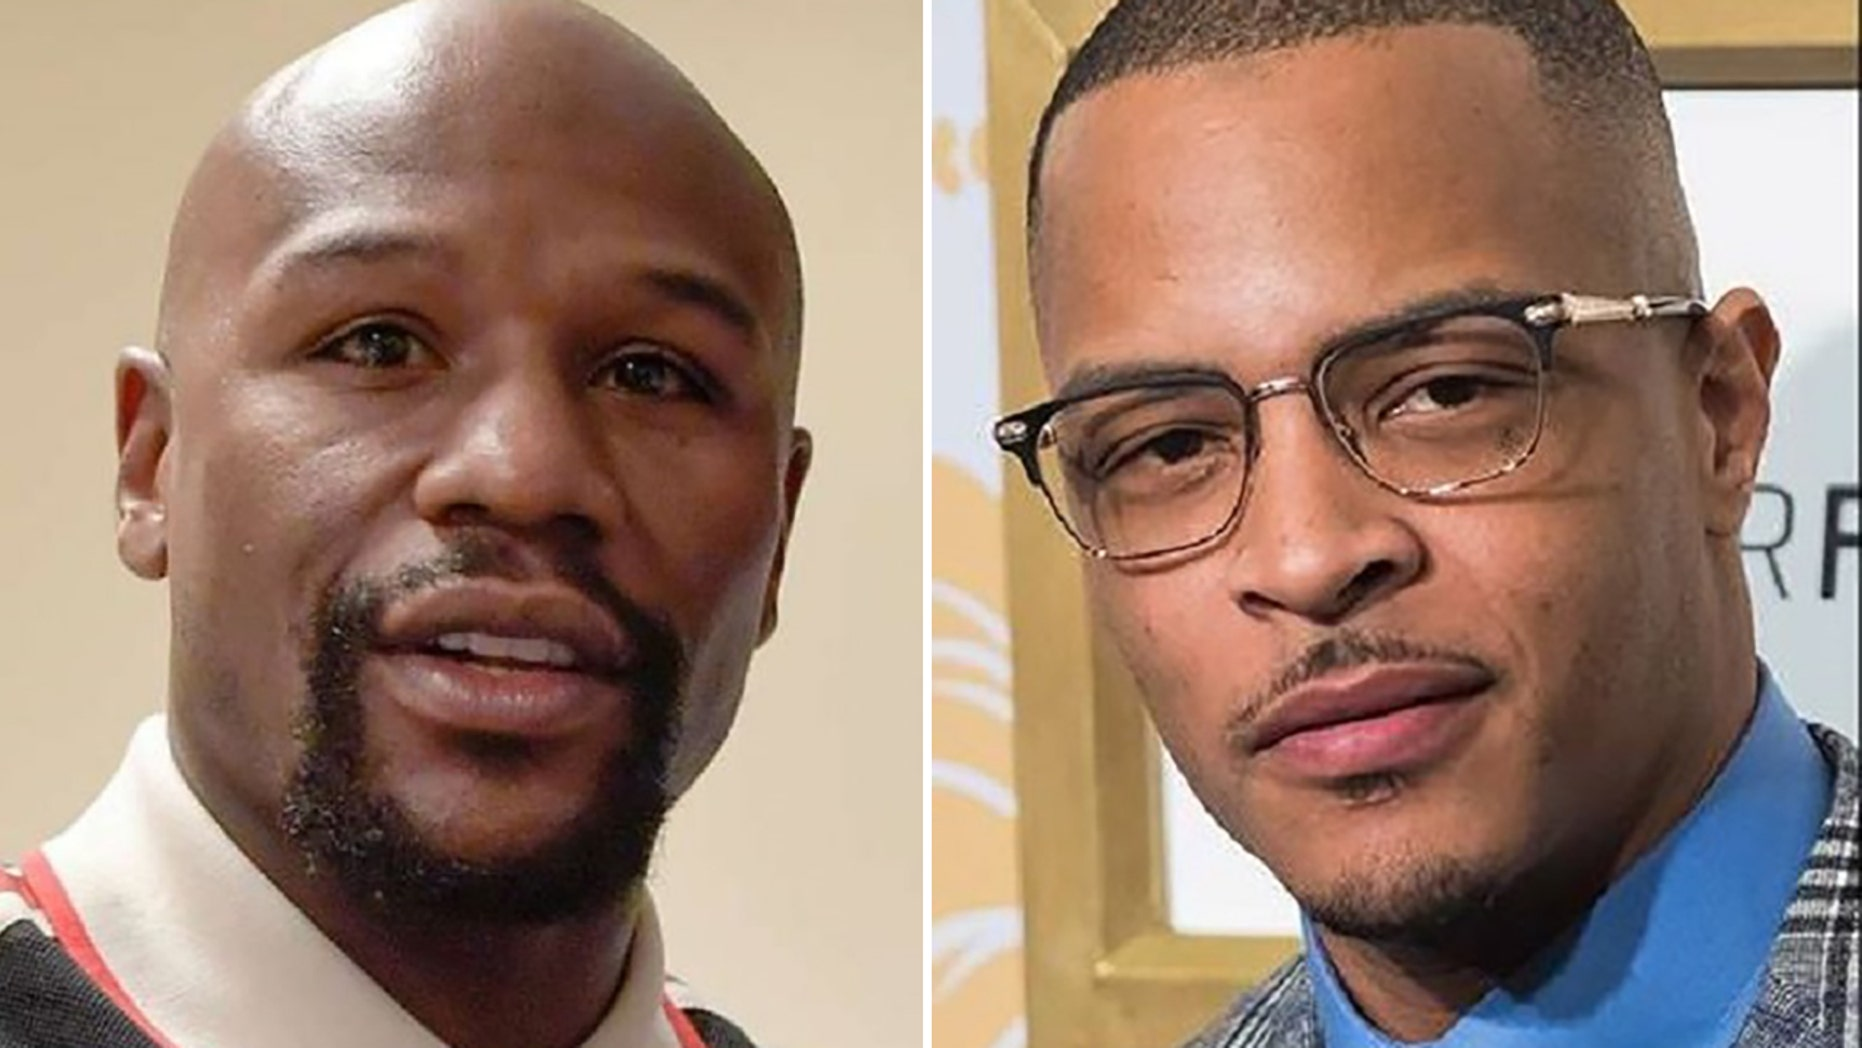 Floyd Mayweather, left, was slammed by rapper T.I. on Thursday for not participating in a boycott against Gucci.